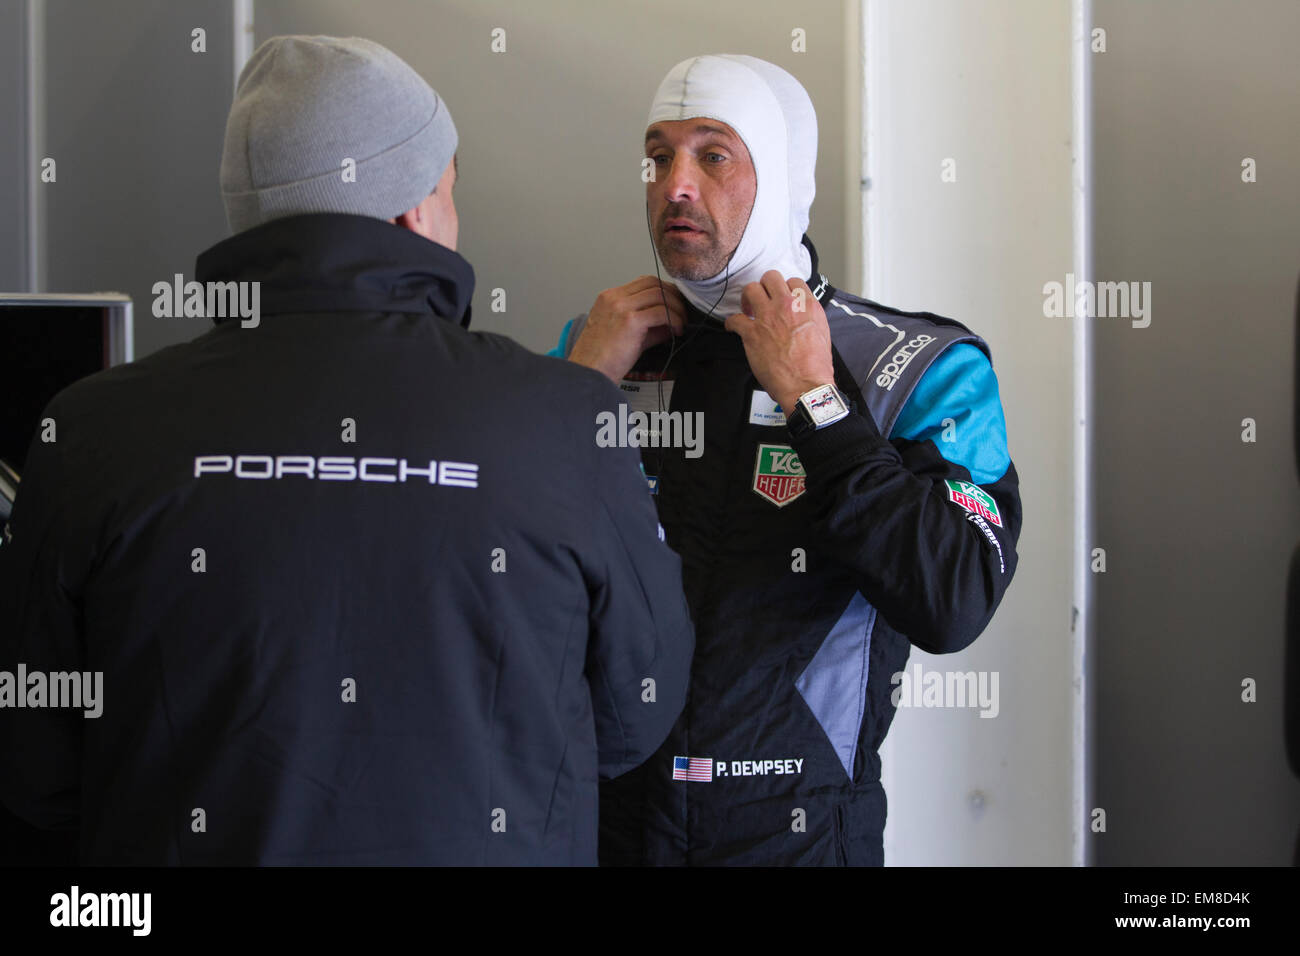 Patrick Dempsey, American actor and amateur racing driver with Porsche World Endurance Championship Team at Silverstone, - Stock Image